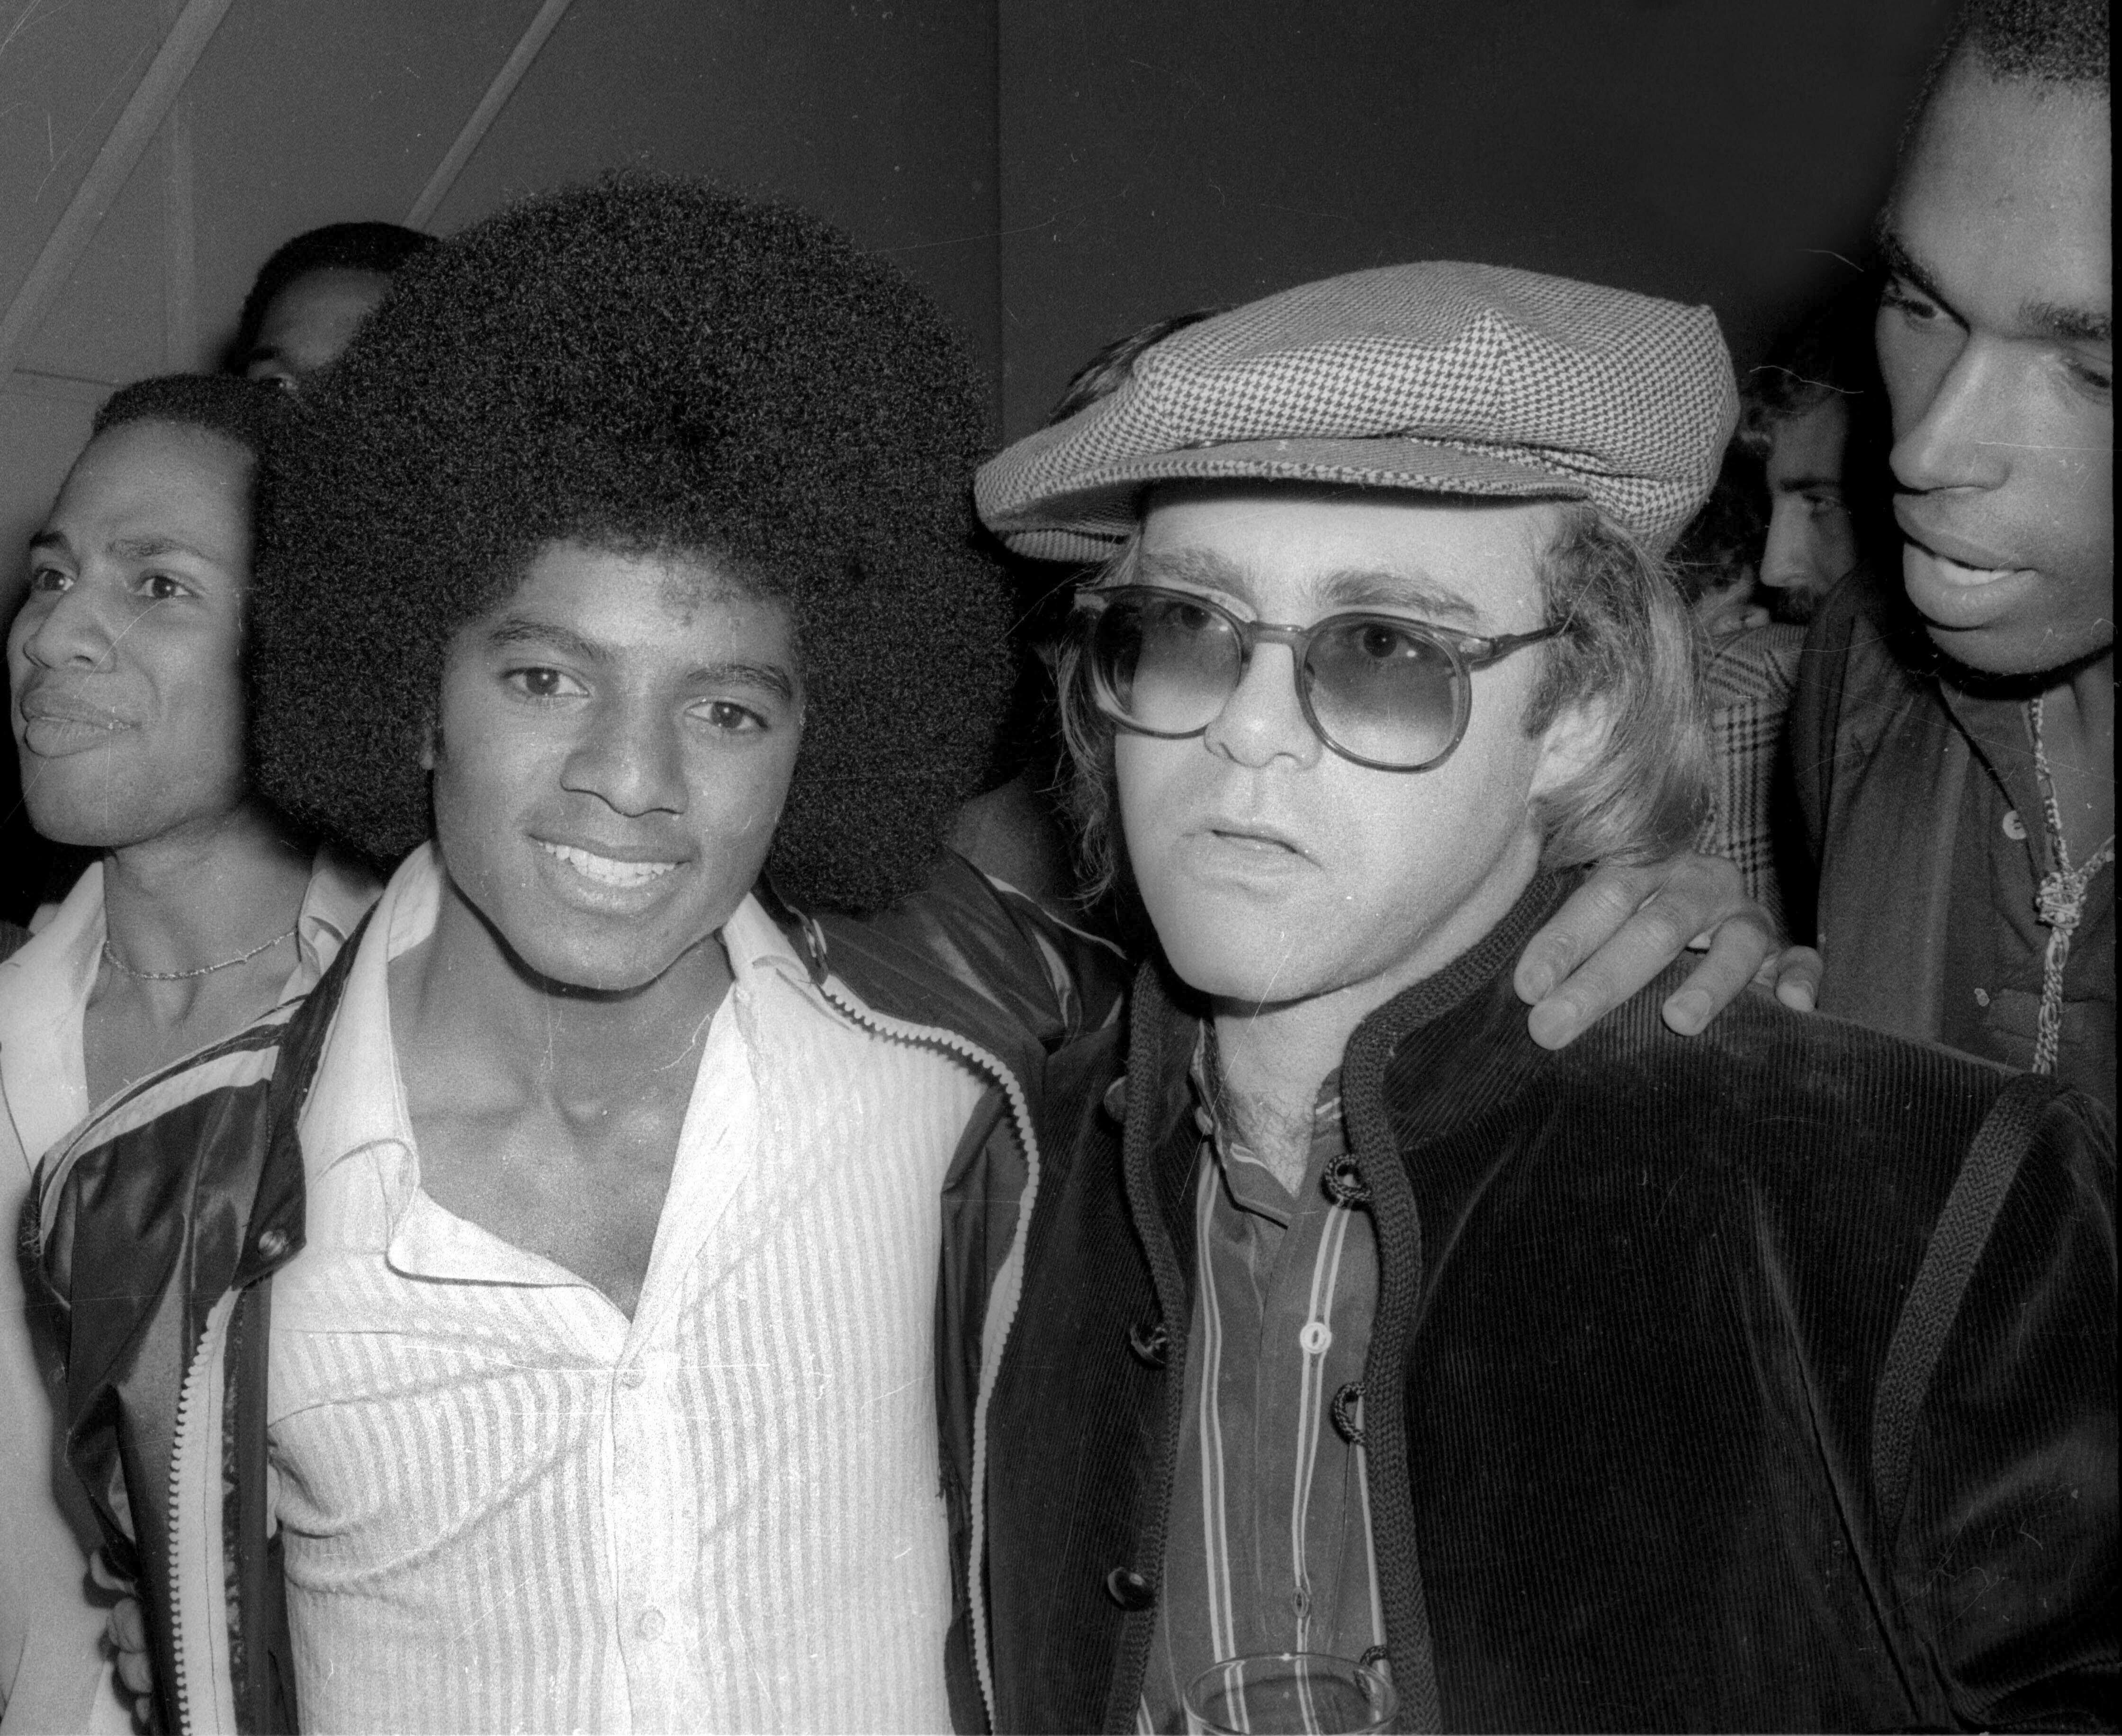 Elton John calls Michael Jackson 'genuinely mentally ill, a disturbing person to be around' in new memoir